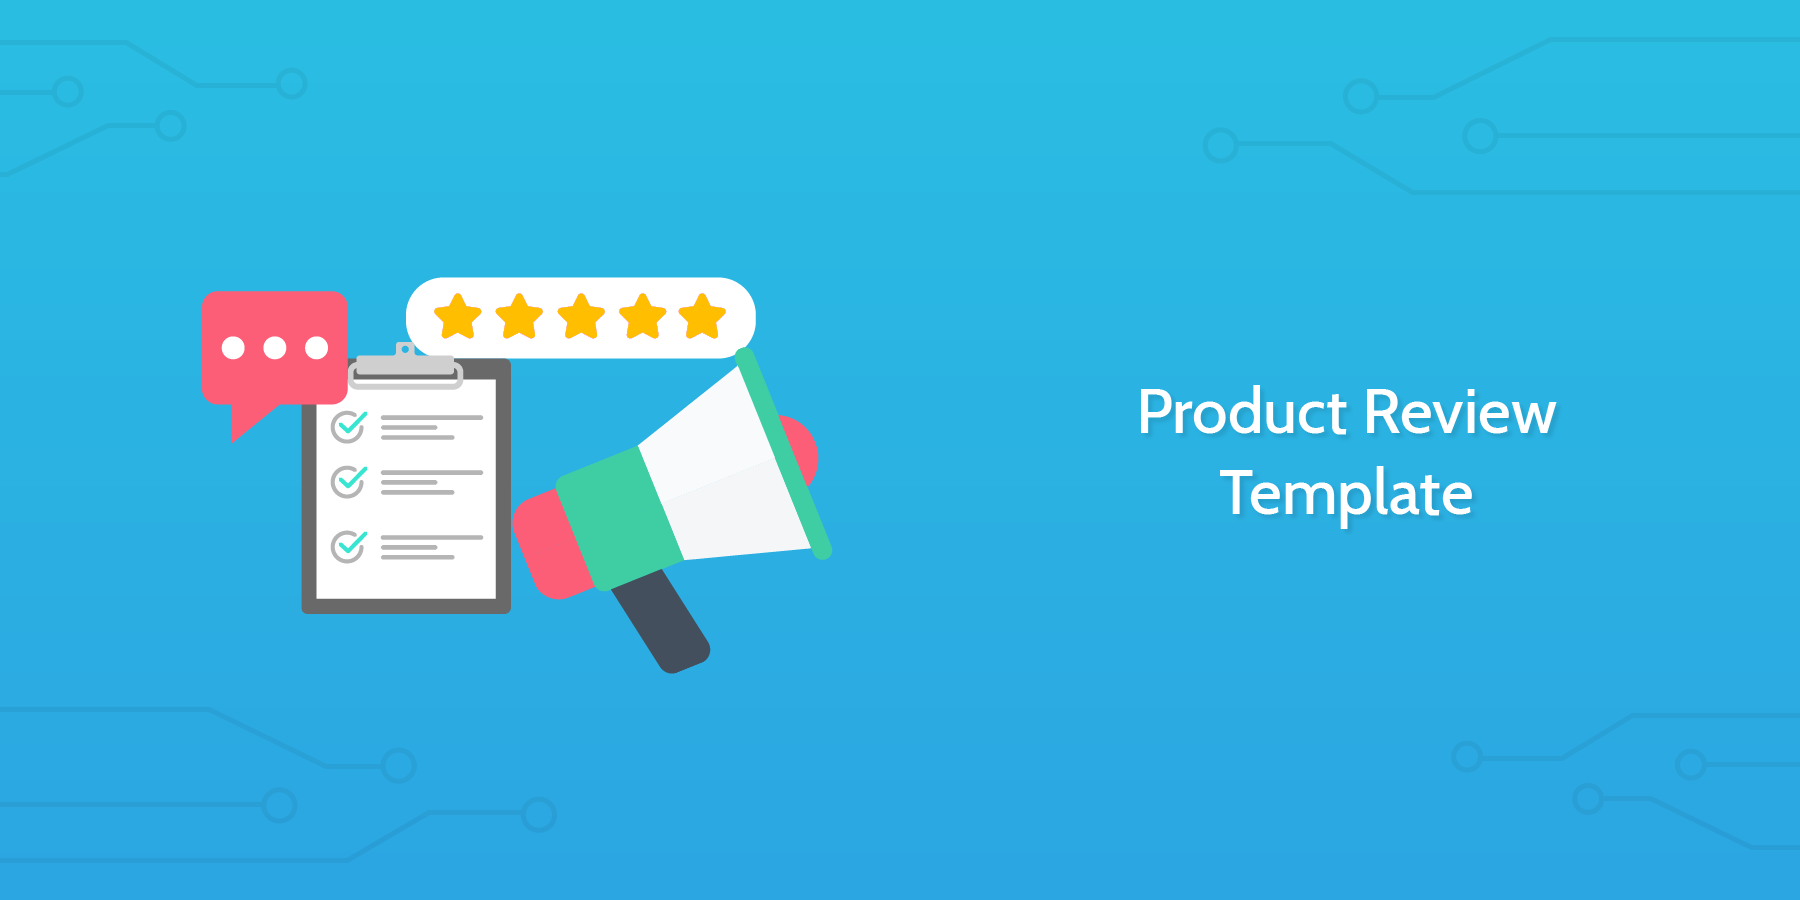 Introduction to Product Review Template: